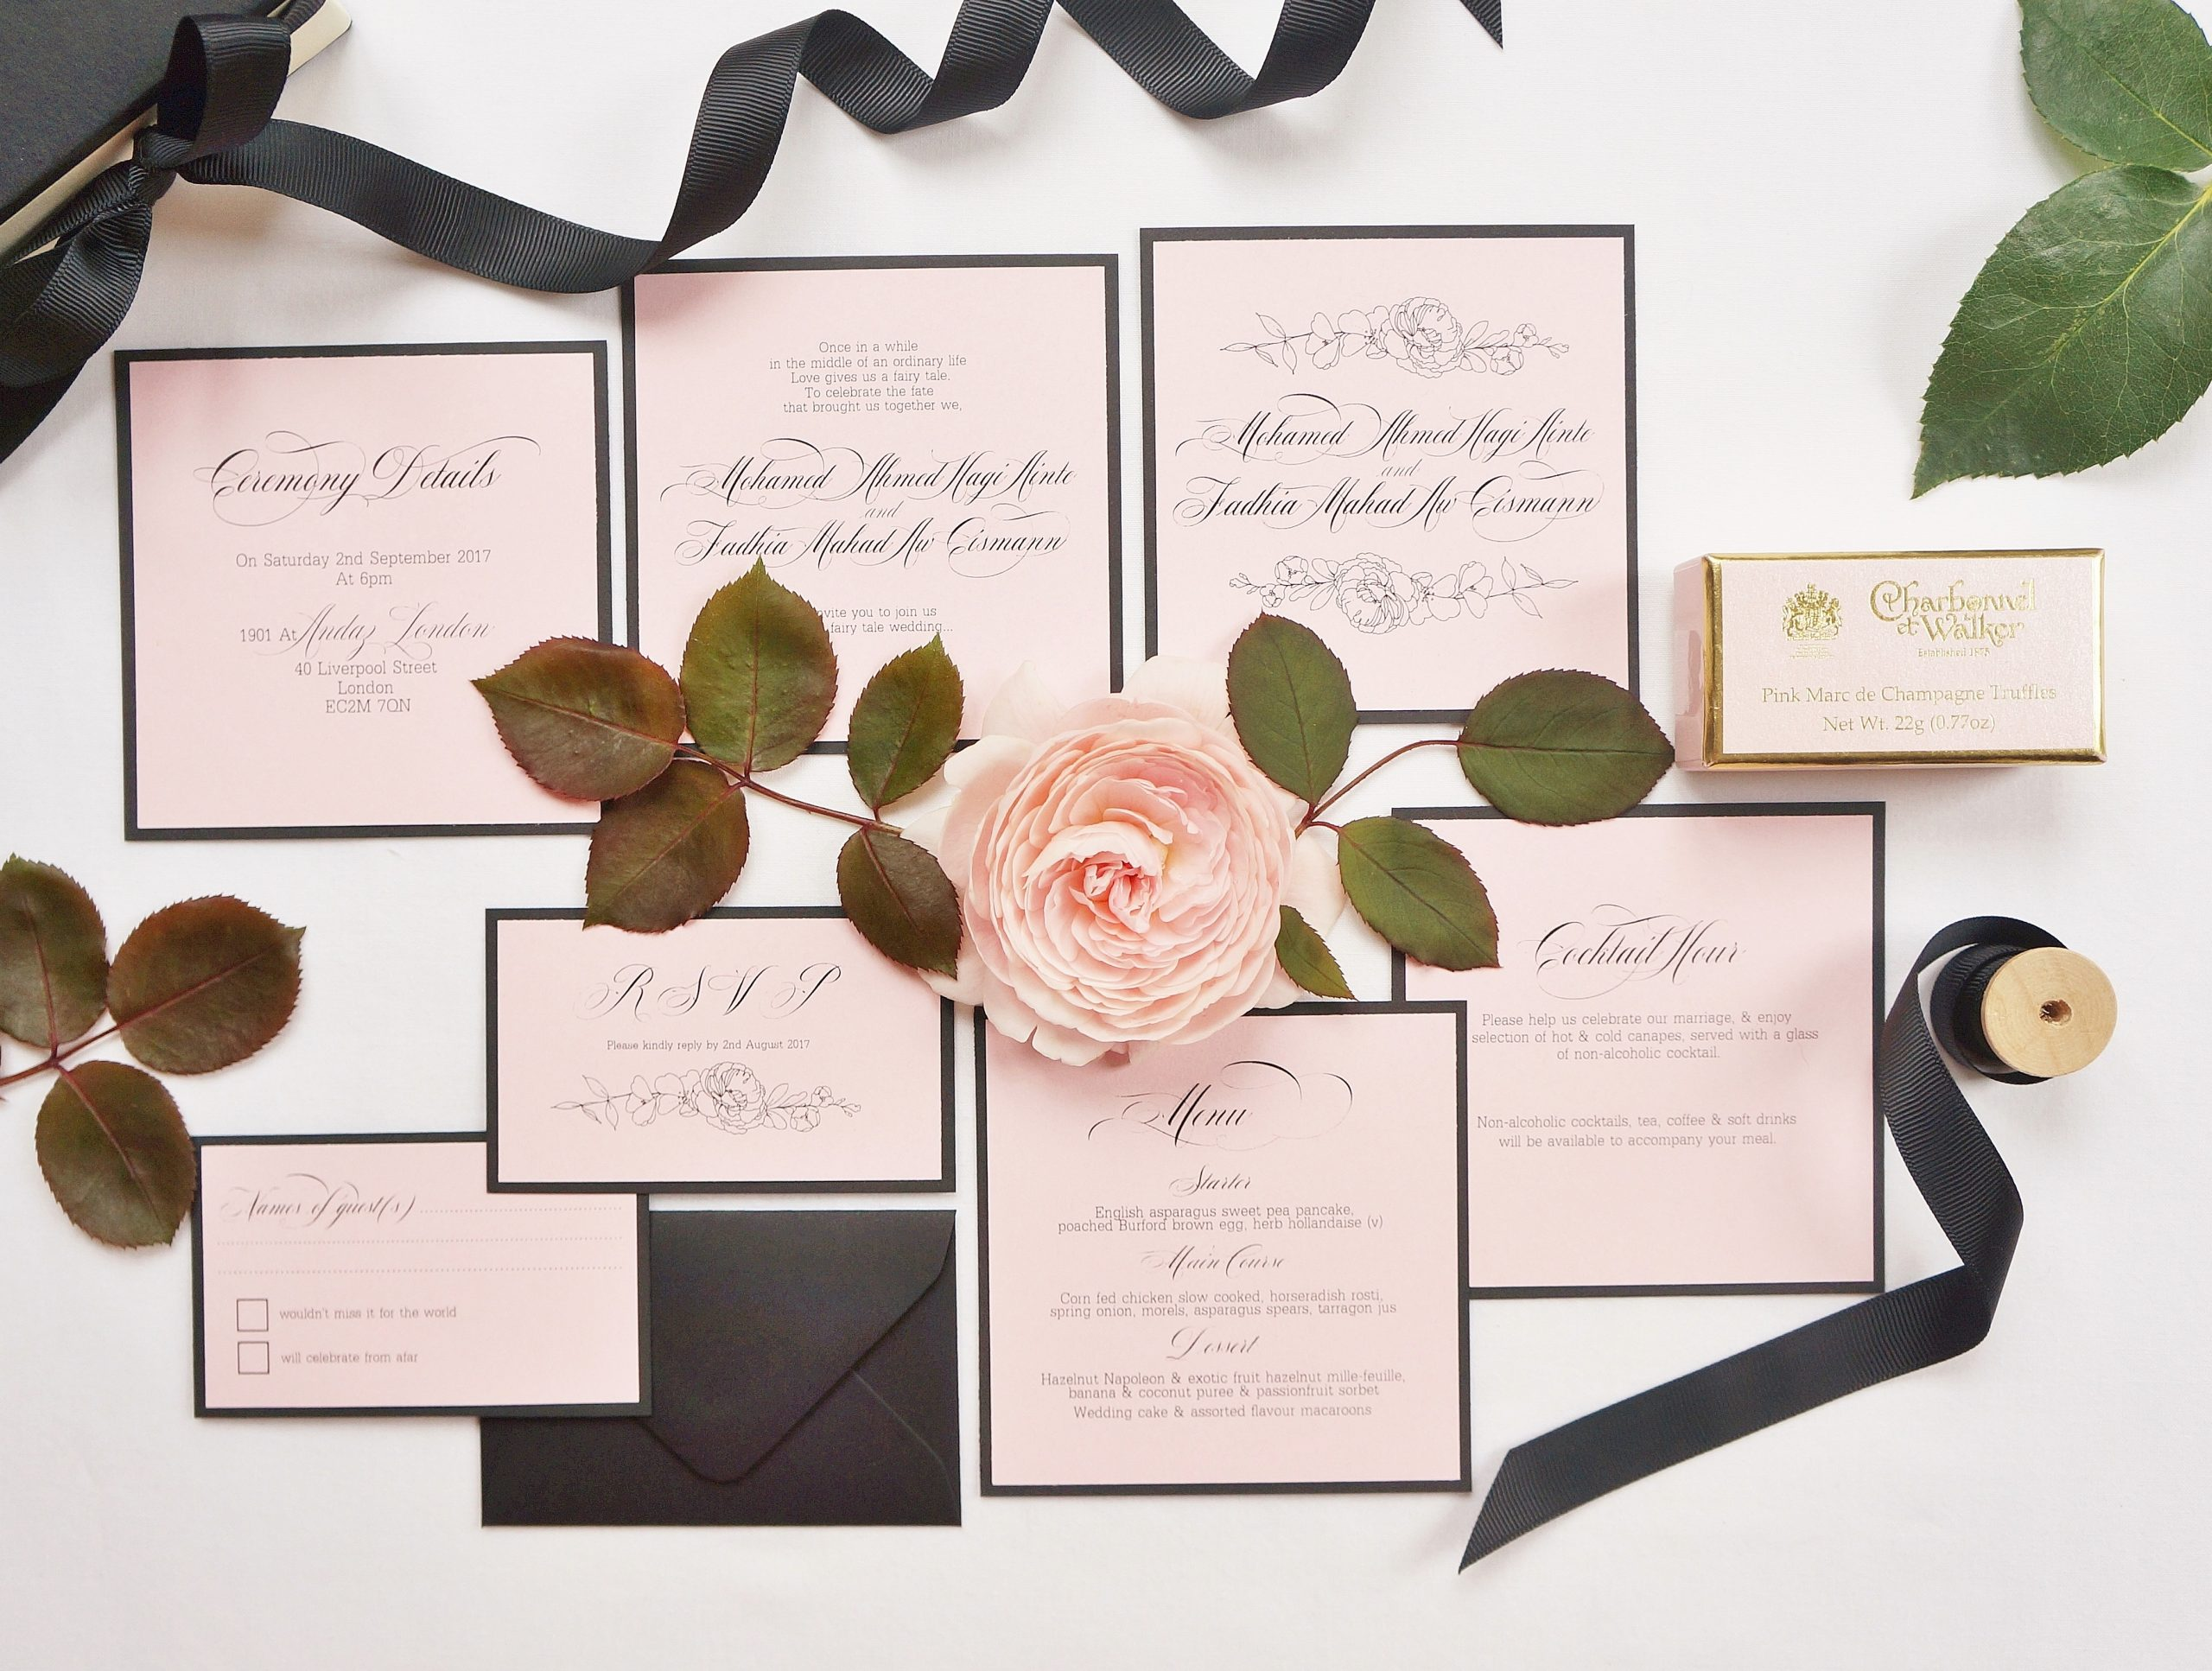 Romantic wedding stationary by Peonies & Paperclips with The Events Designers